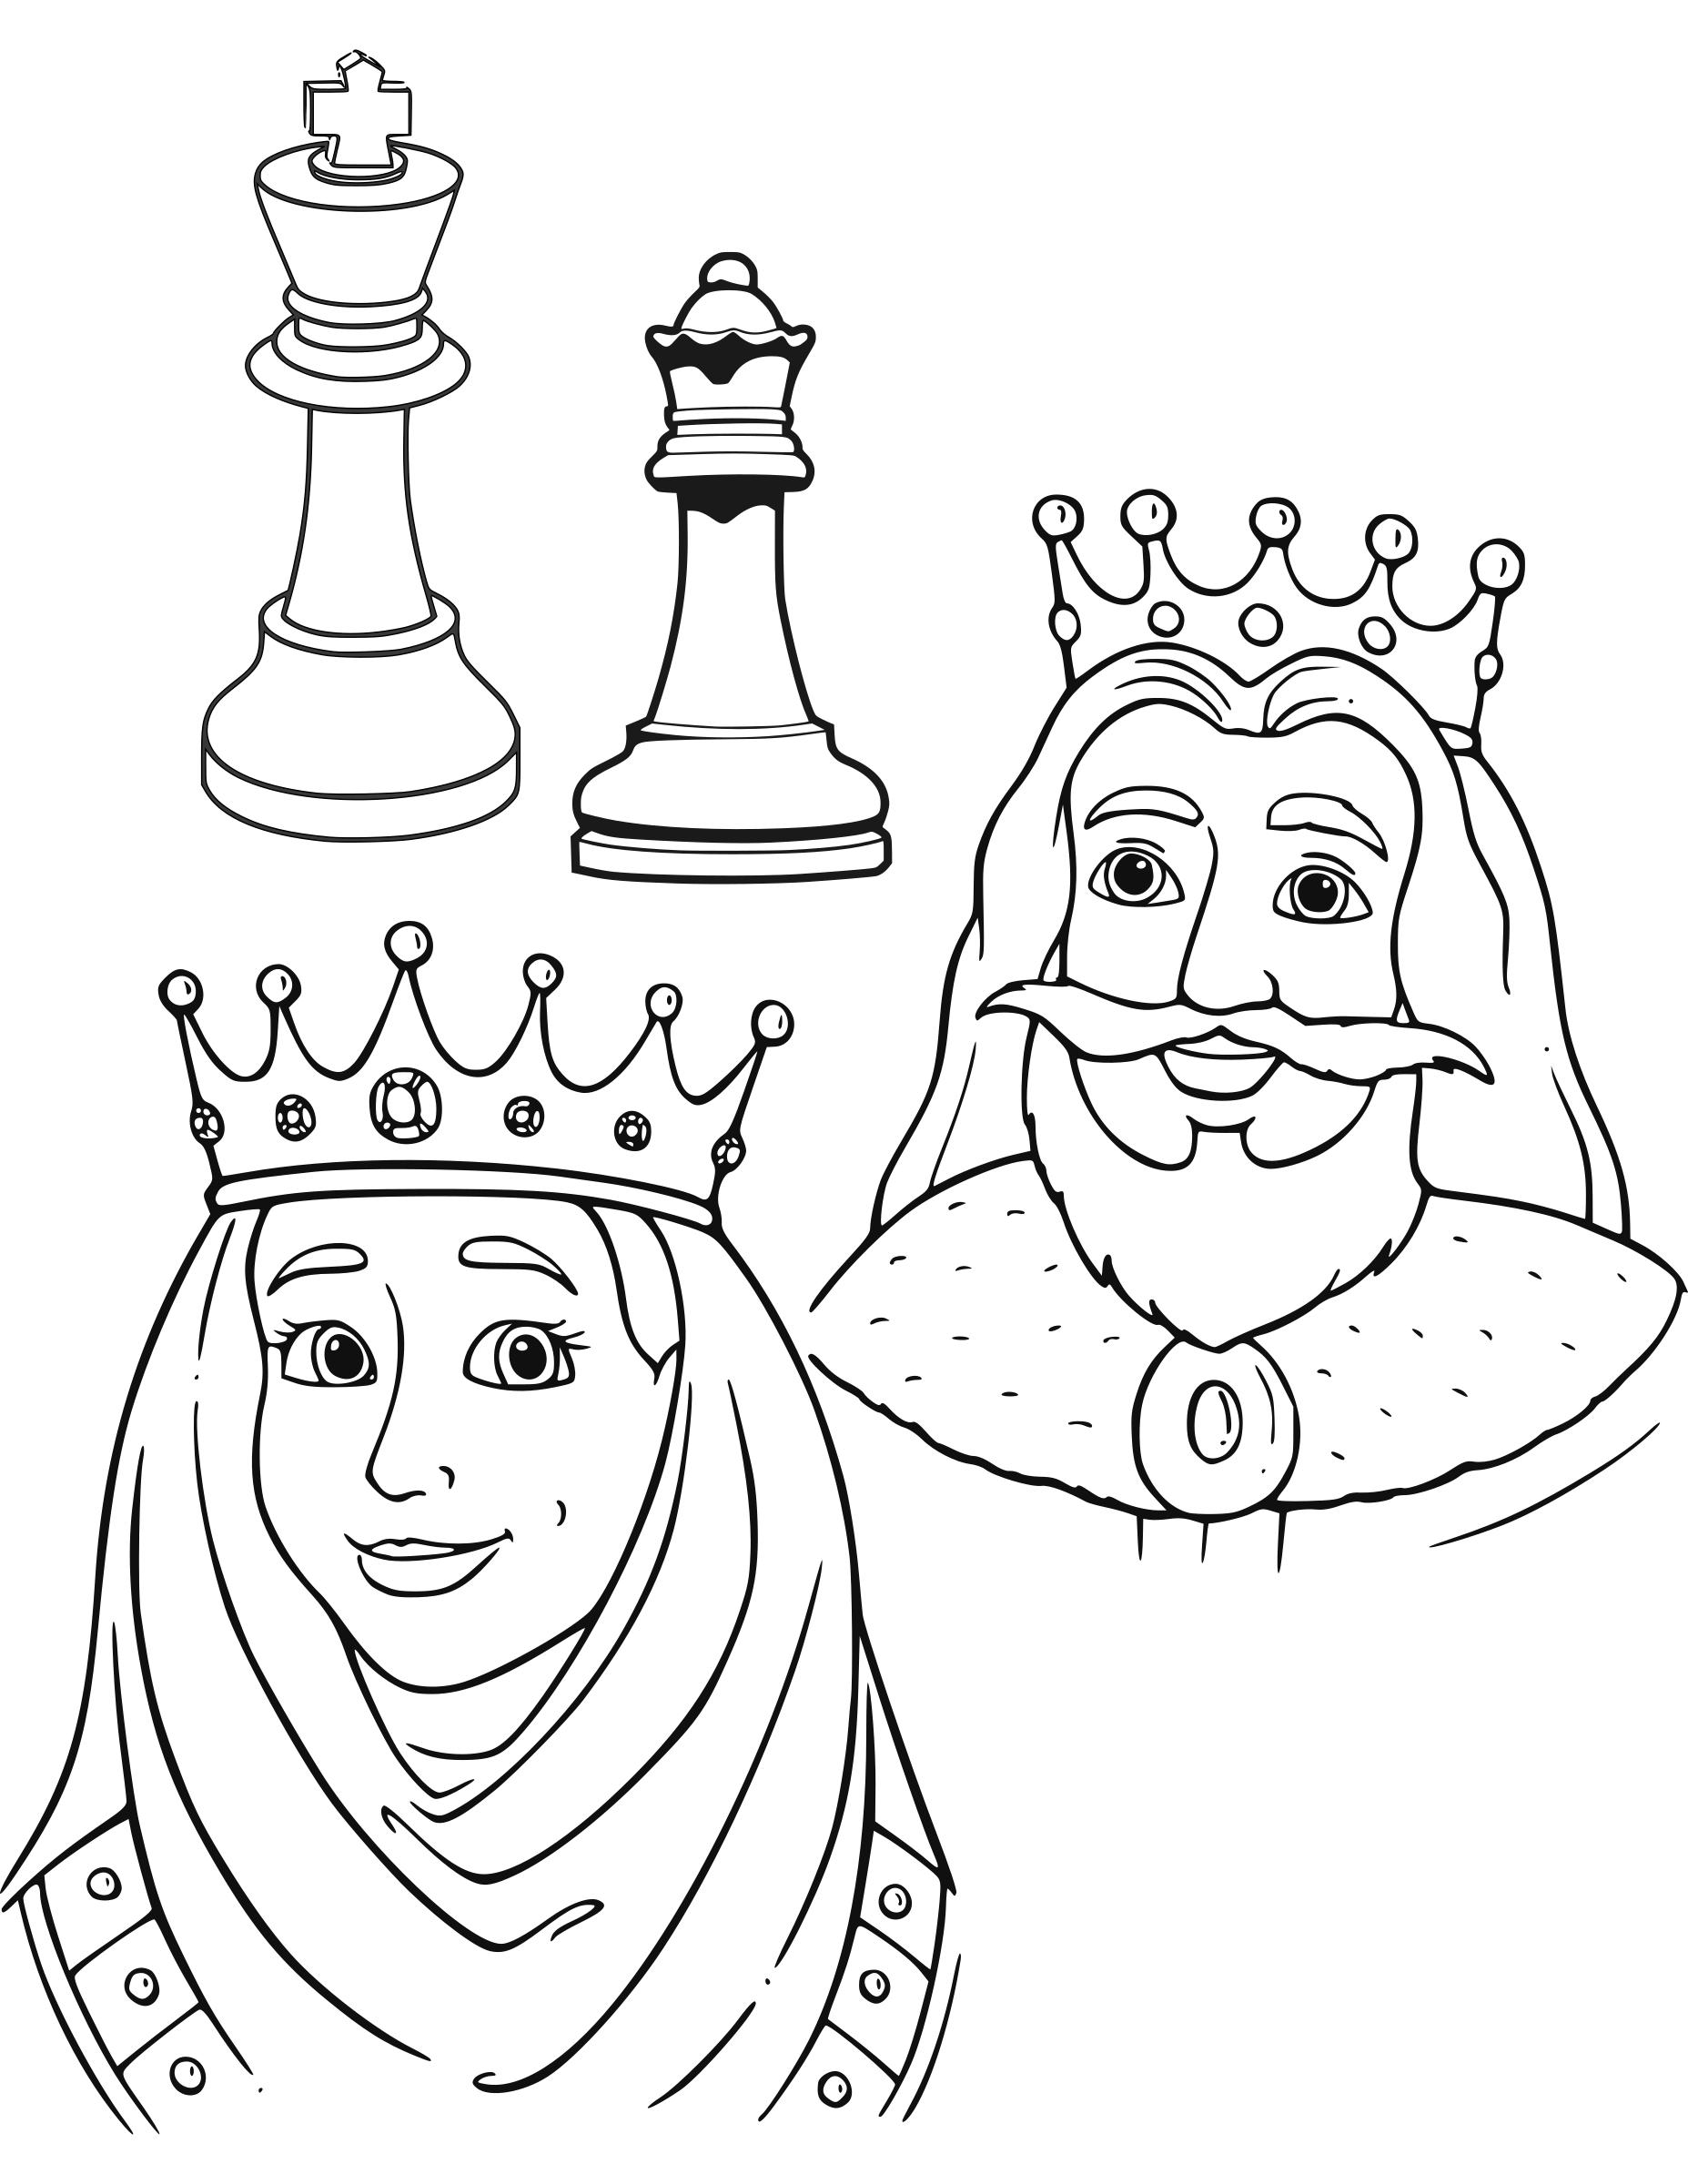 Chess coloring book  / Dibujo Ajedrez para colorear -23- by DG-RA